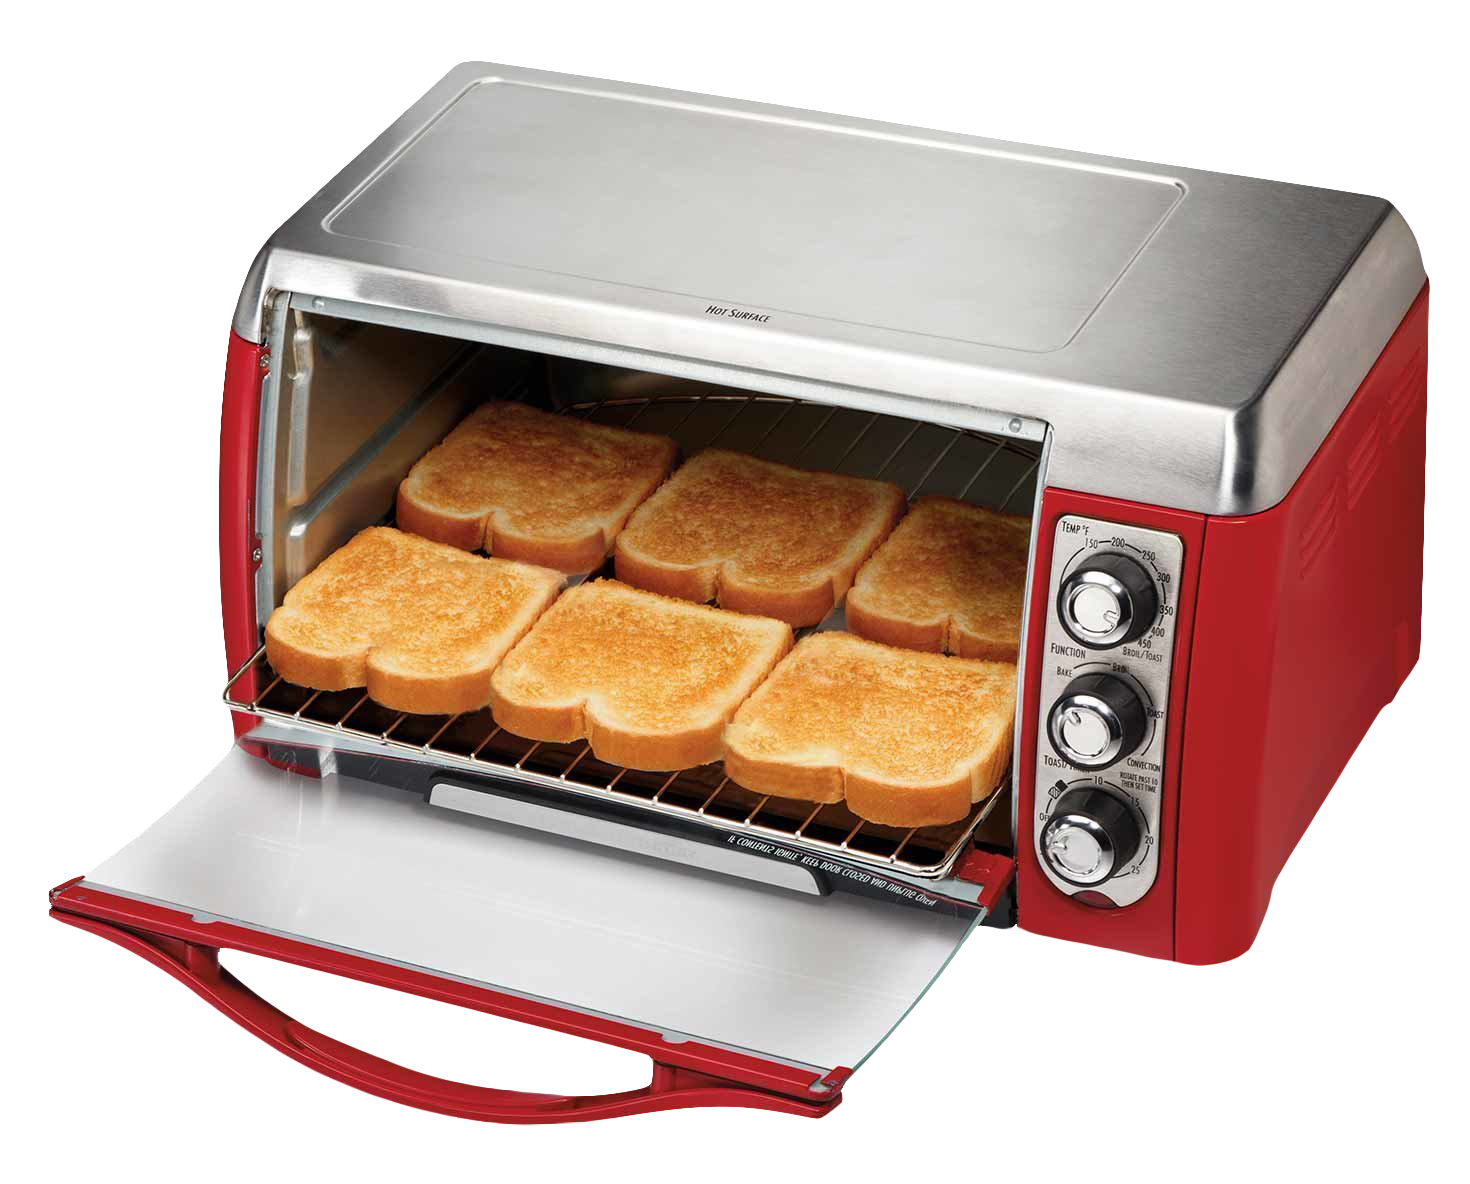 Toaster clipart vintage. Microwave oven png image